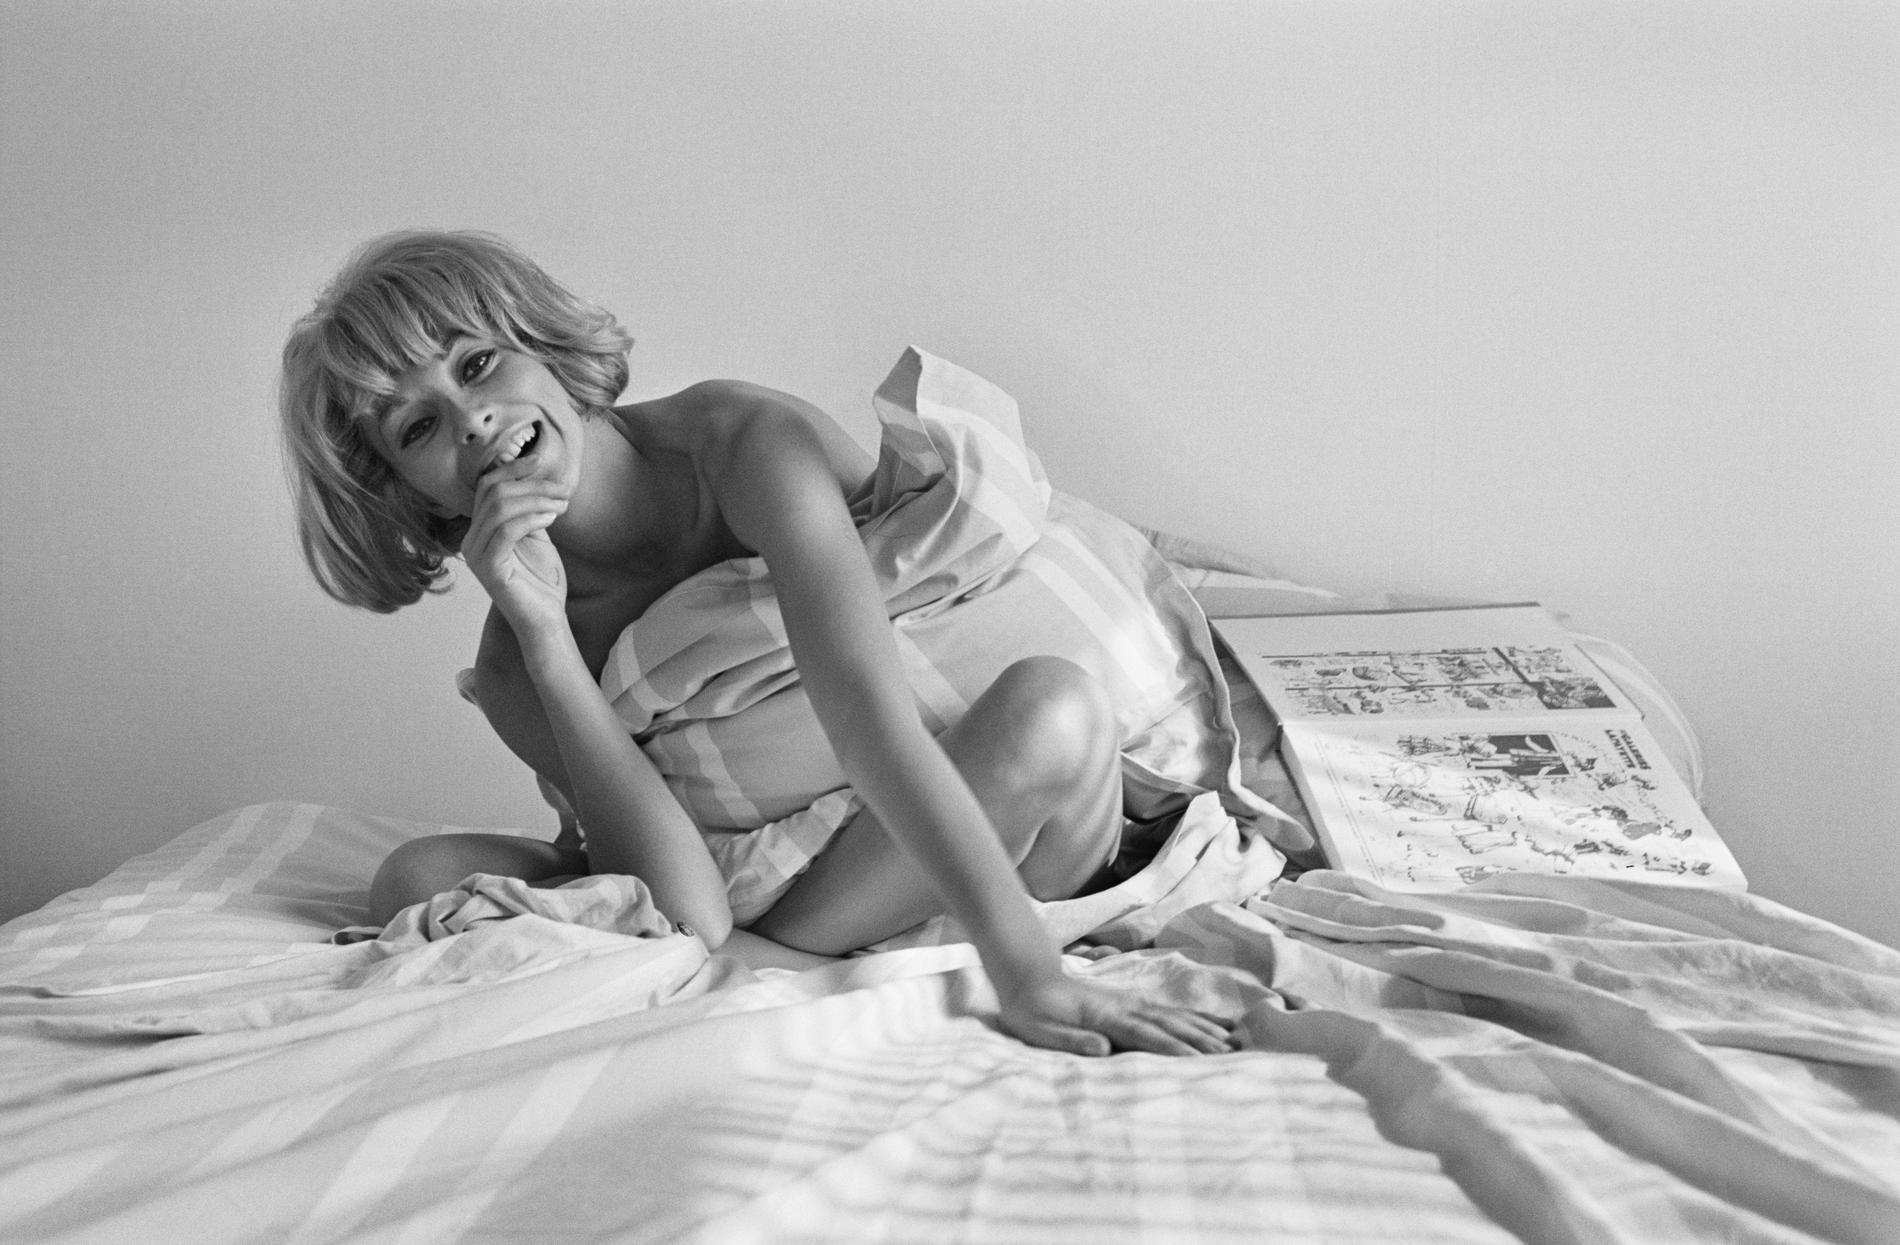 l039album-photo-de-mireille-darc-photo-6.jpg